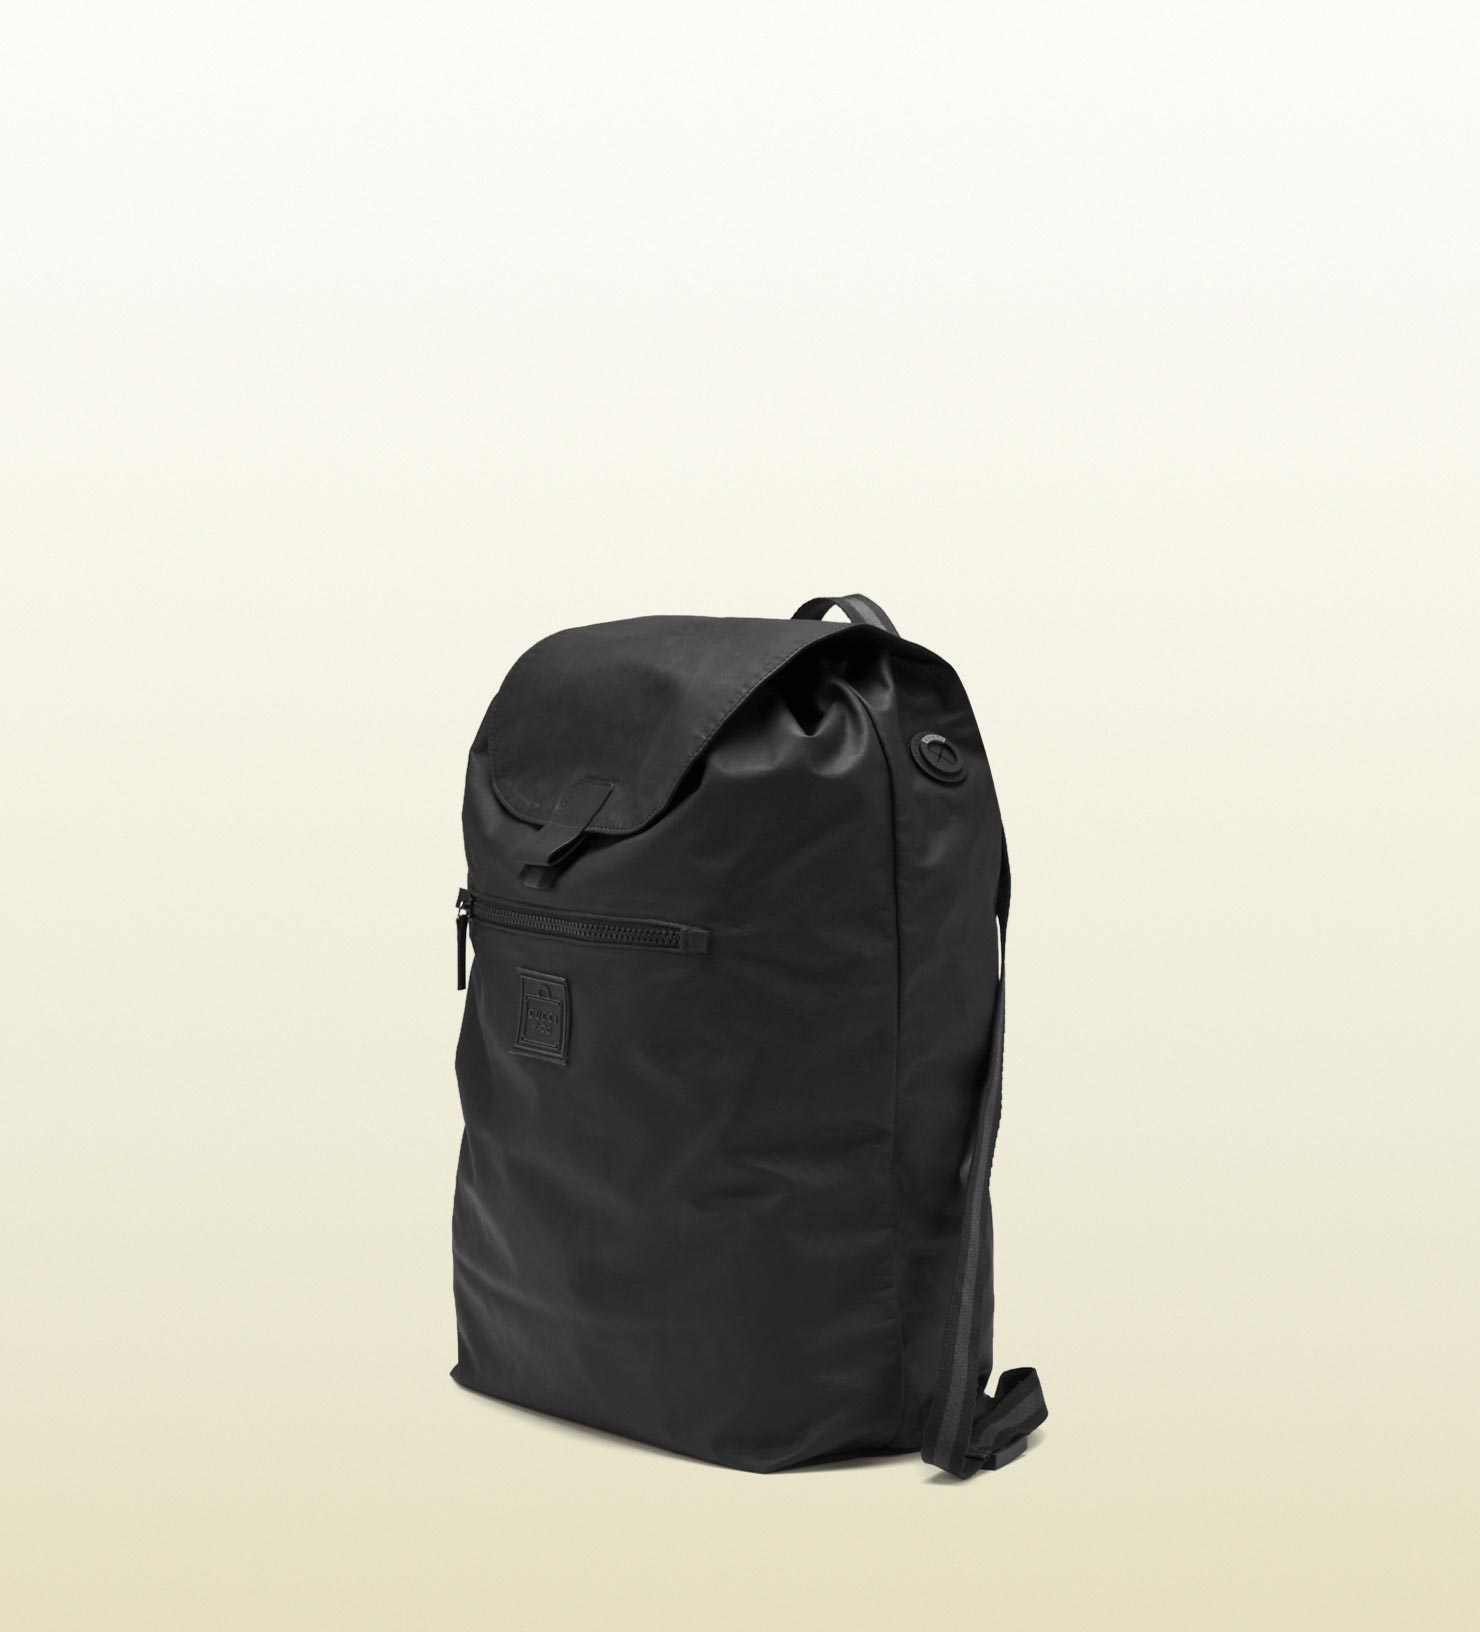 1aada4dea12c Lyst - Gucci Black Leather Backpack From Viaggio Collection in Black ...